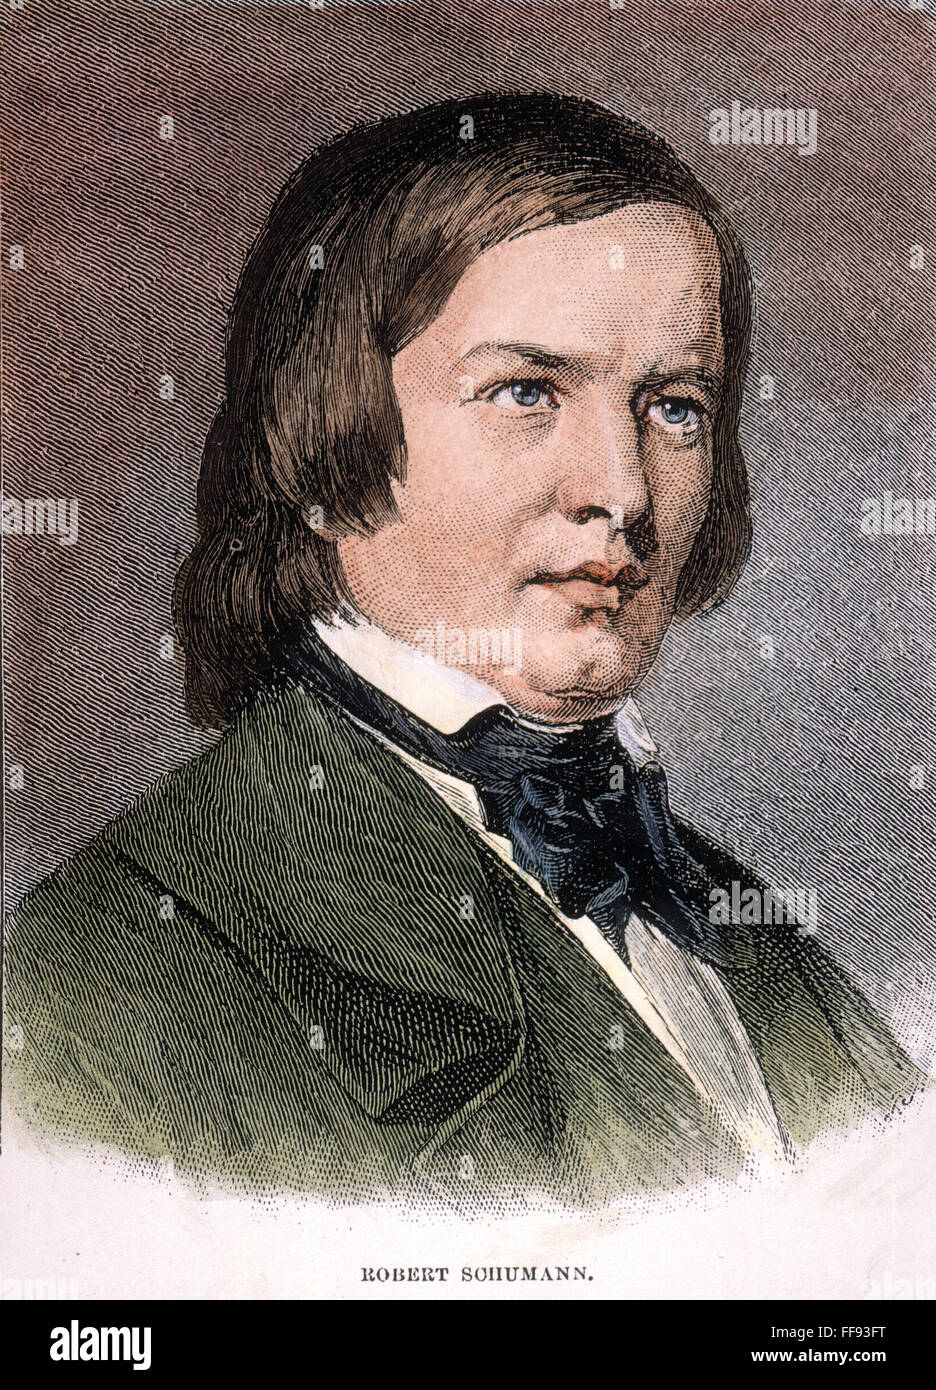 a biography of robert schumann a german composer Schumann, robert (alexander) — born june 8, 1810, zwickau, saxony died july 29, 1856, endenich, near bonn, prussia german composer son of a bookseller, he considered becoming a novelist son of a bookseller, he considered becoming a novelist.